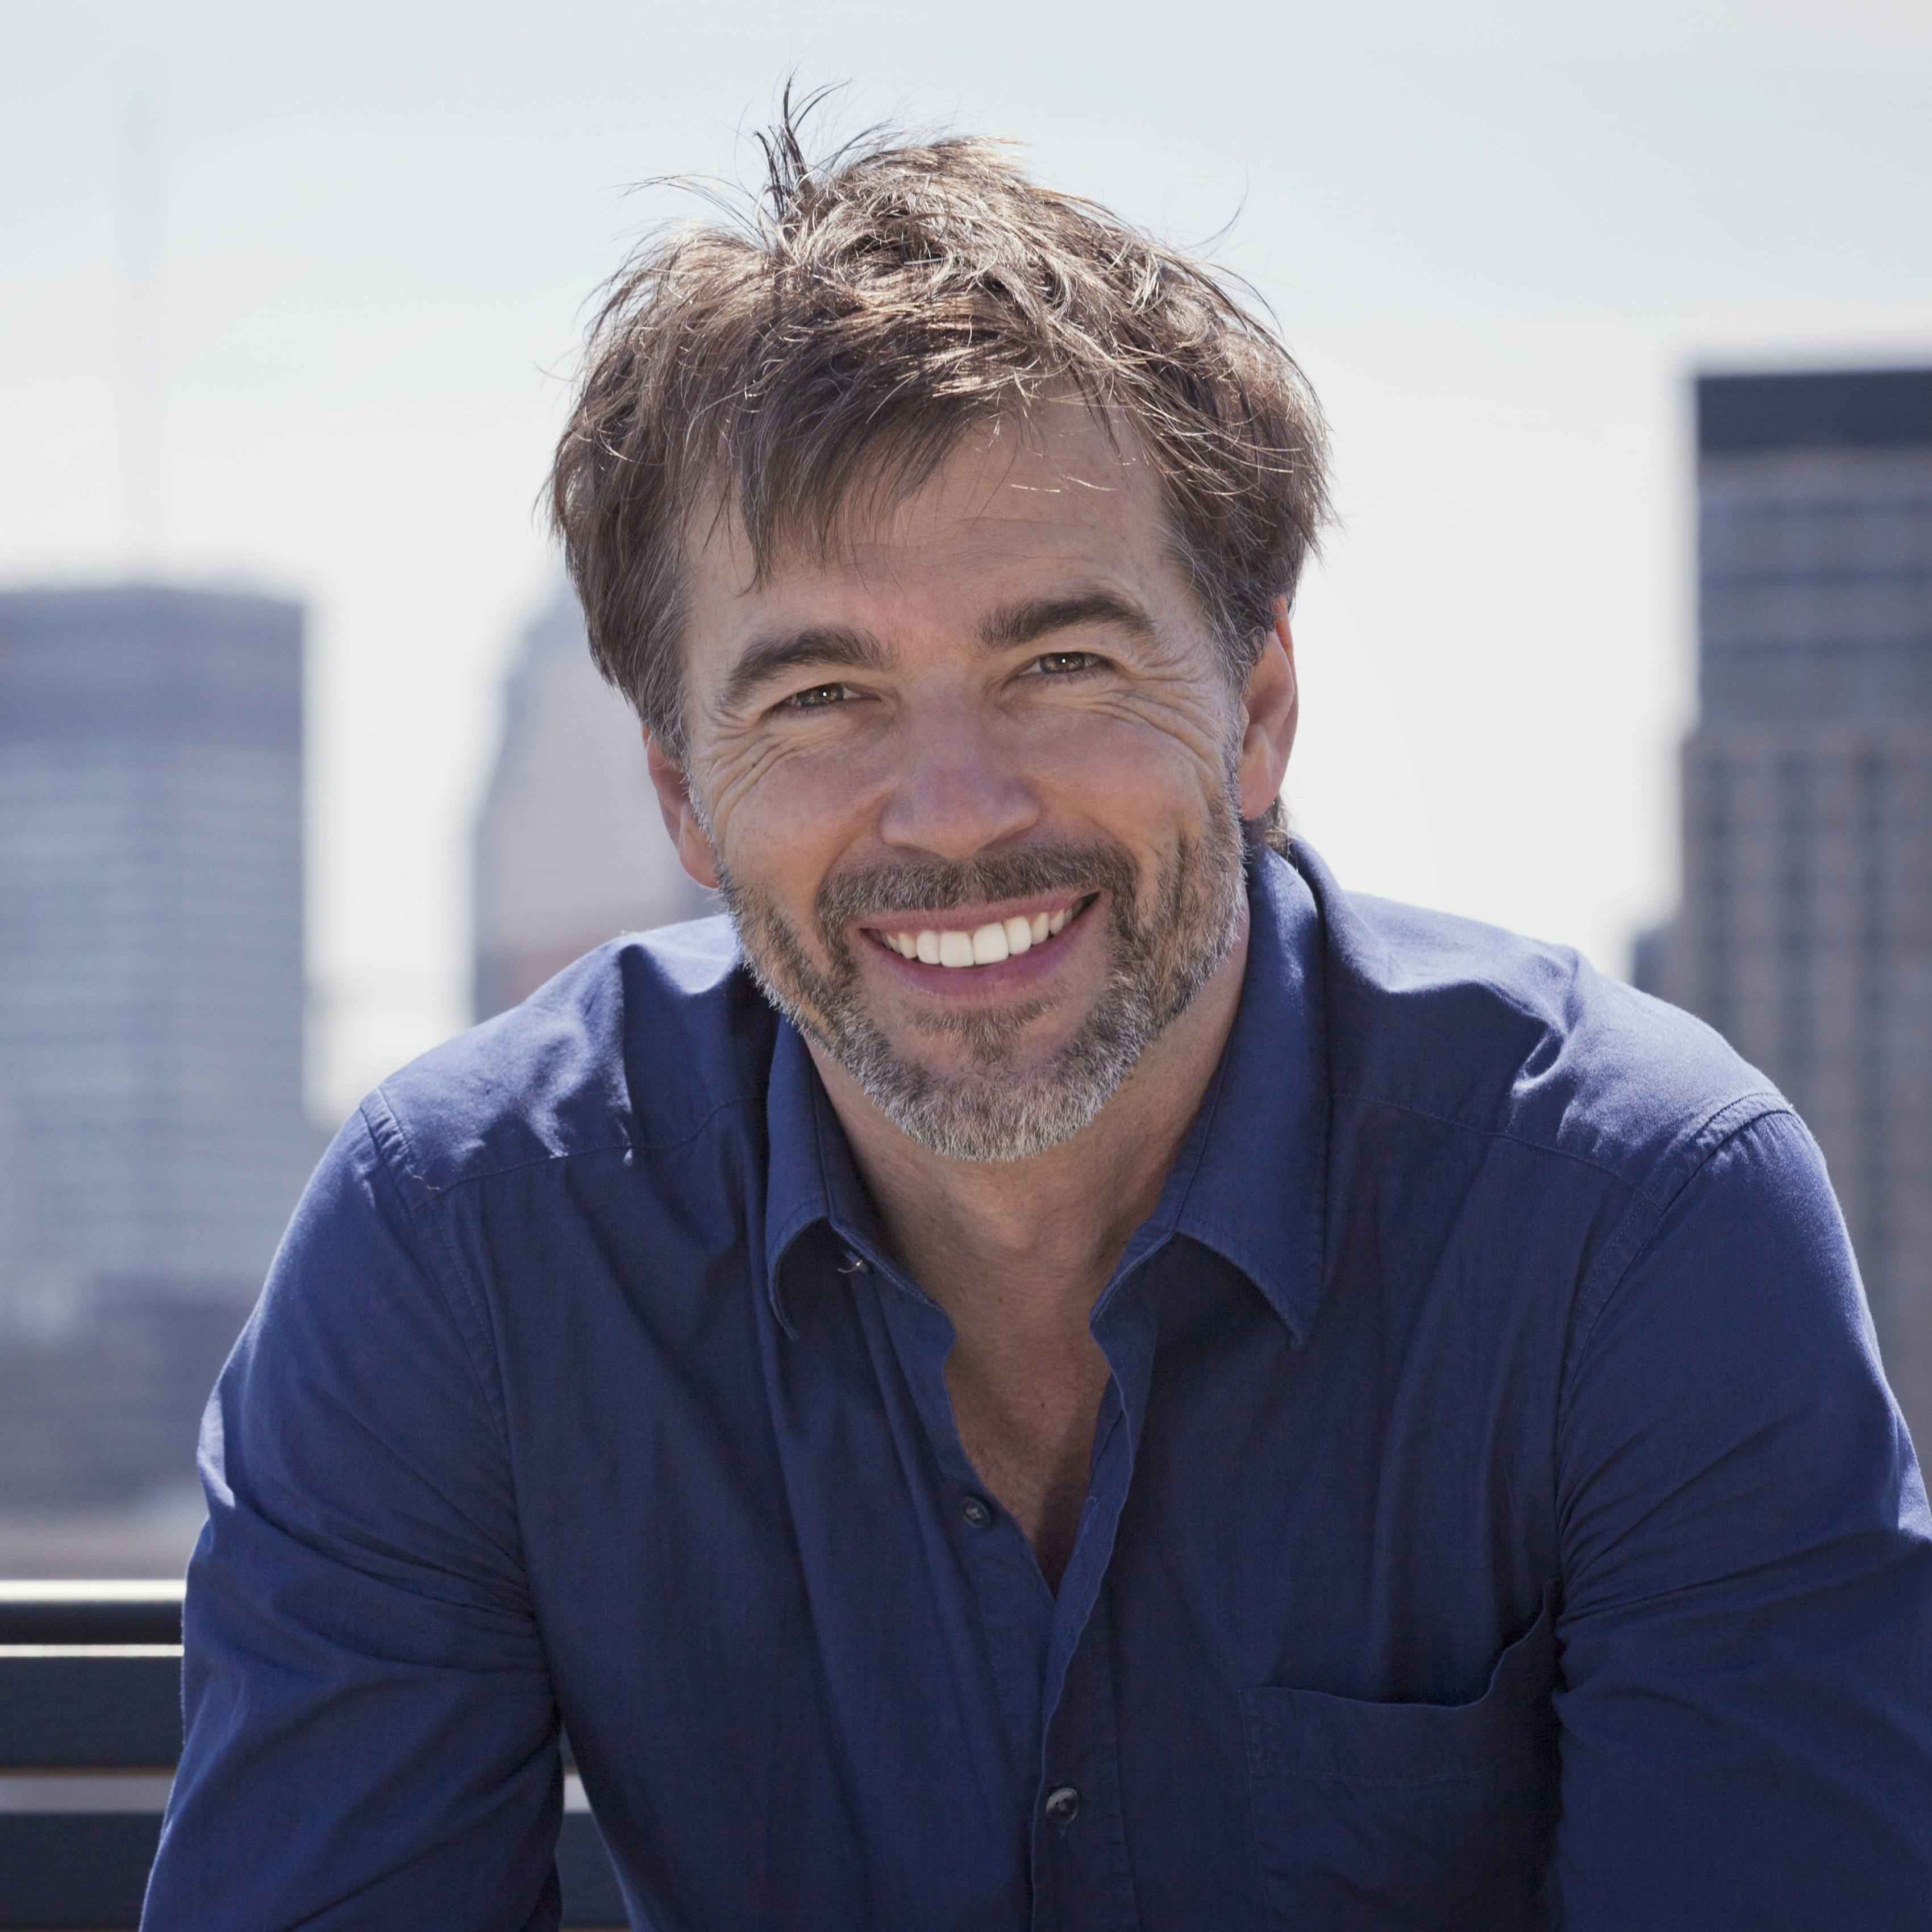 a happy and smiling middle-aged mature man outside with a city skyline in the background